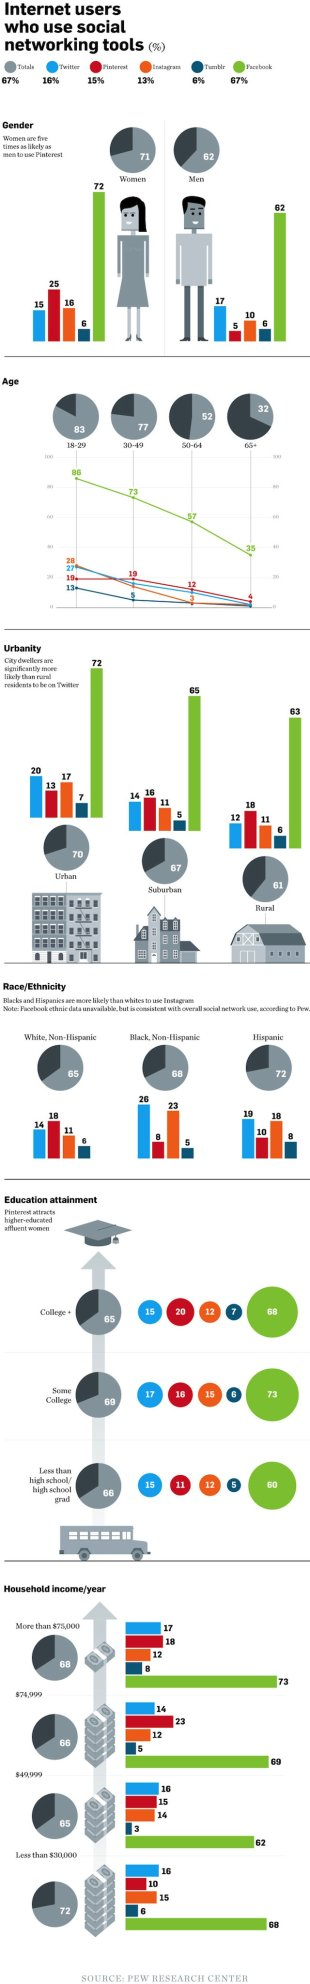 Pew Breaks Down Social Media Demographics by Age, Gender, and Race image social media demographic infographic